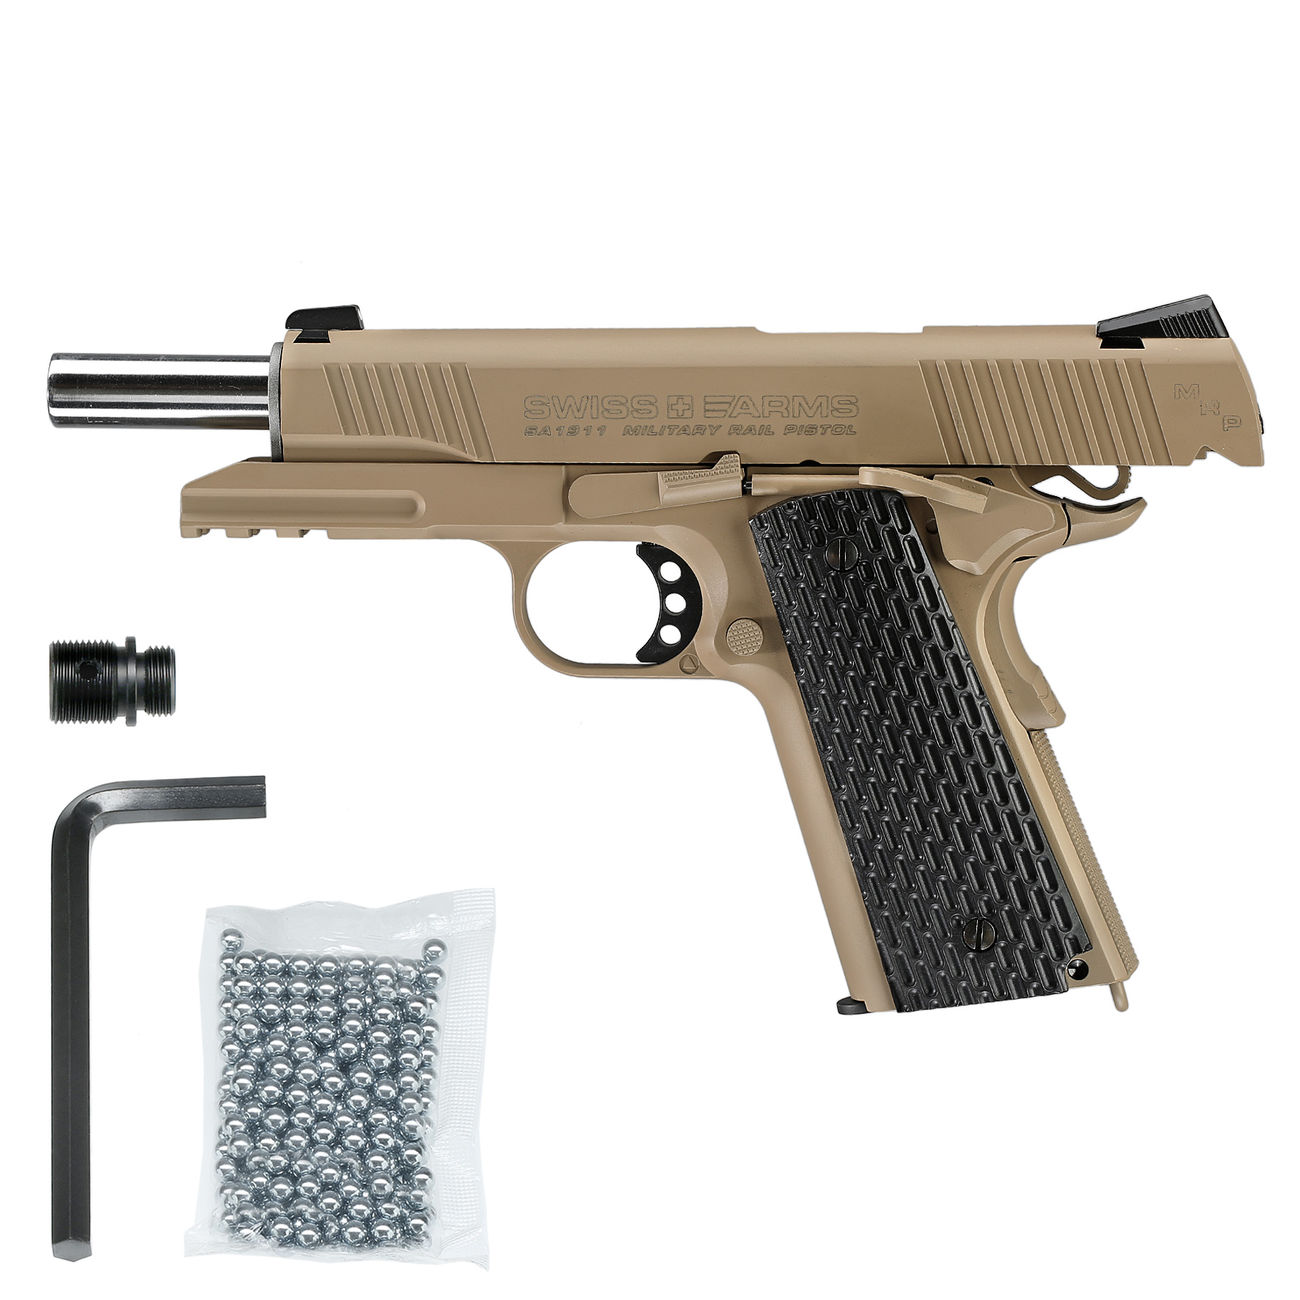 Swiss Arms P1911 CO2 Luftpistole Blow Back Kal. 4,5mmBB Vollmetall Military Rail desert 5